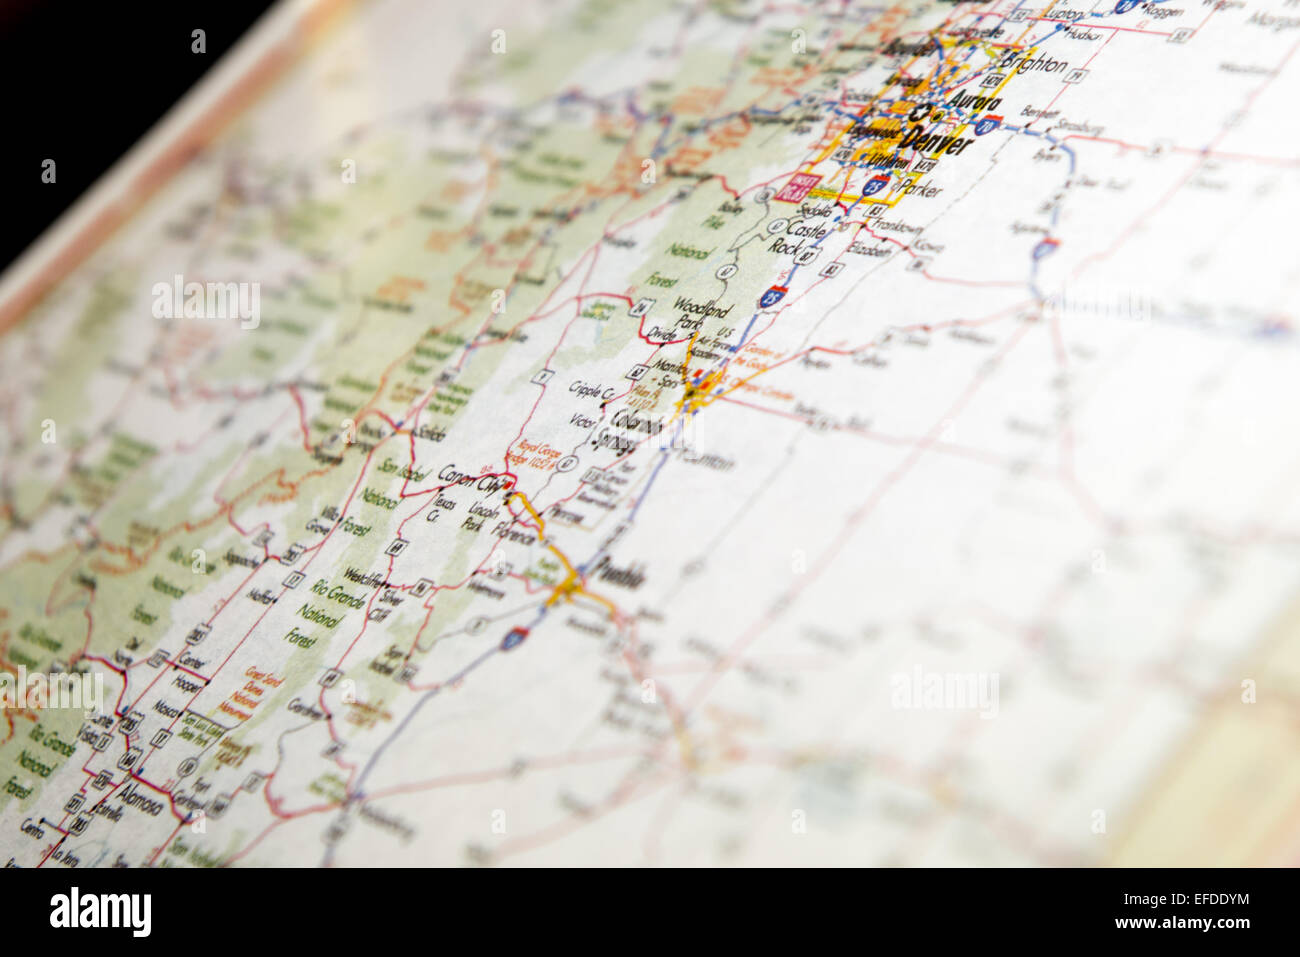 Roadmap And Usa Stock Photos & Roadmap And Usa Stock Images - Alamy